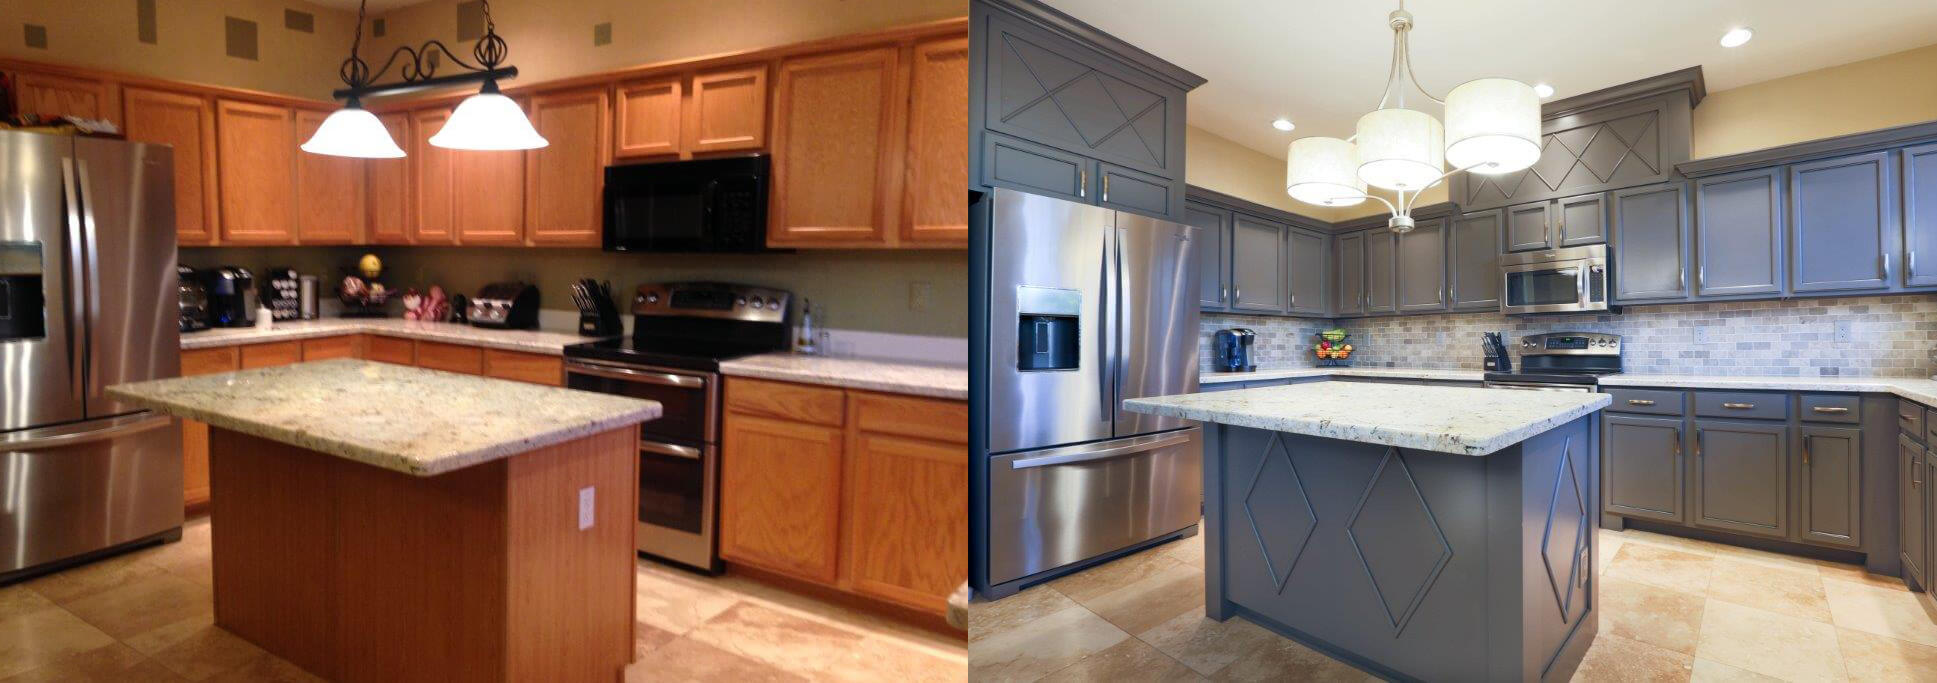 Cabinet Refacing Marblecast Of Michigan